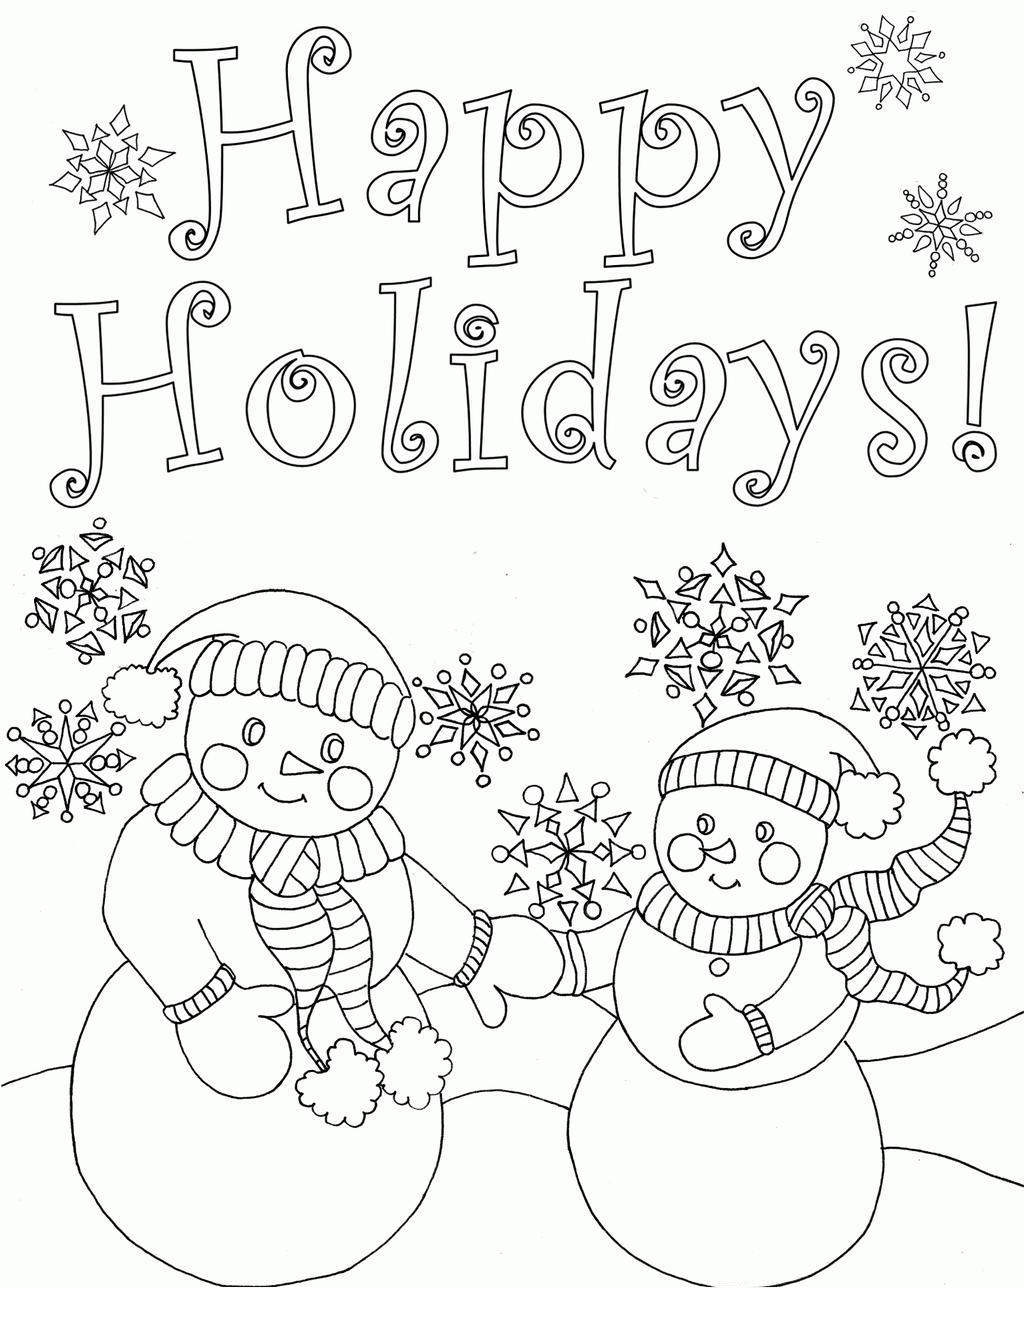 Spanish Holiday Coloring Pages Mothers Day Lineart